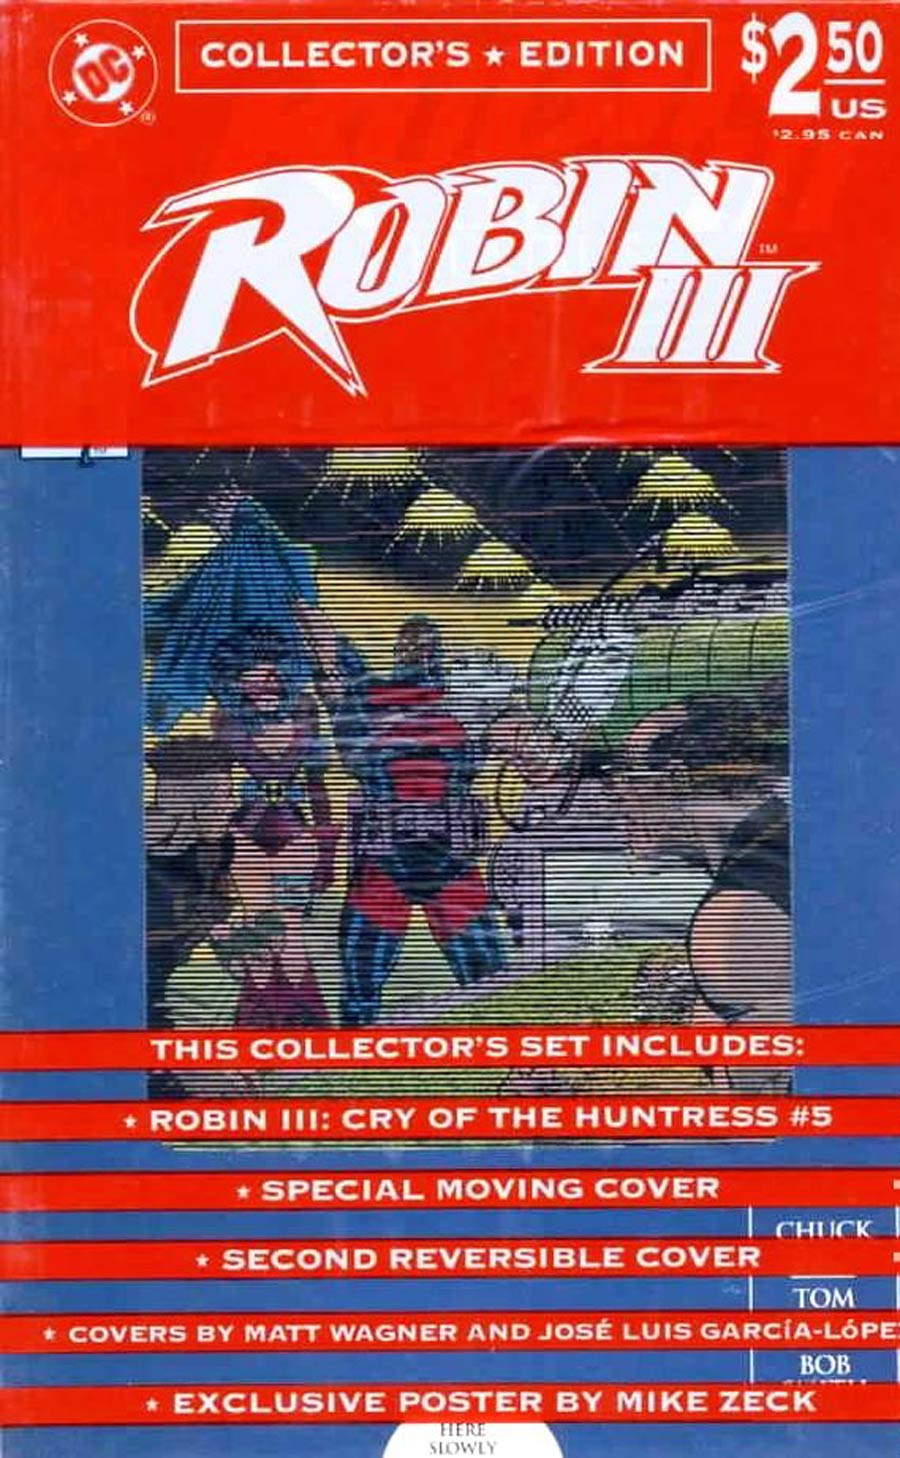 Robin Vol 3 #5 Cover A Cry Of The Huntress Collectors Edition With Polybag